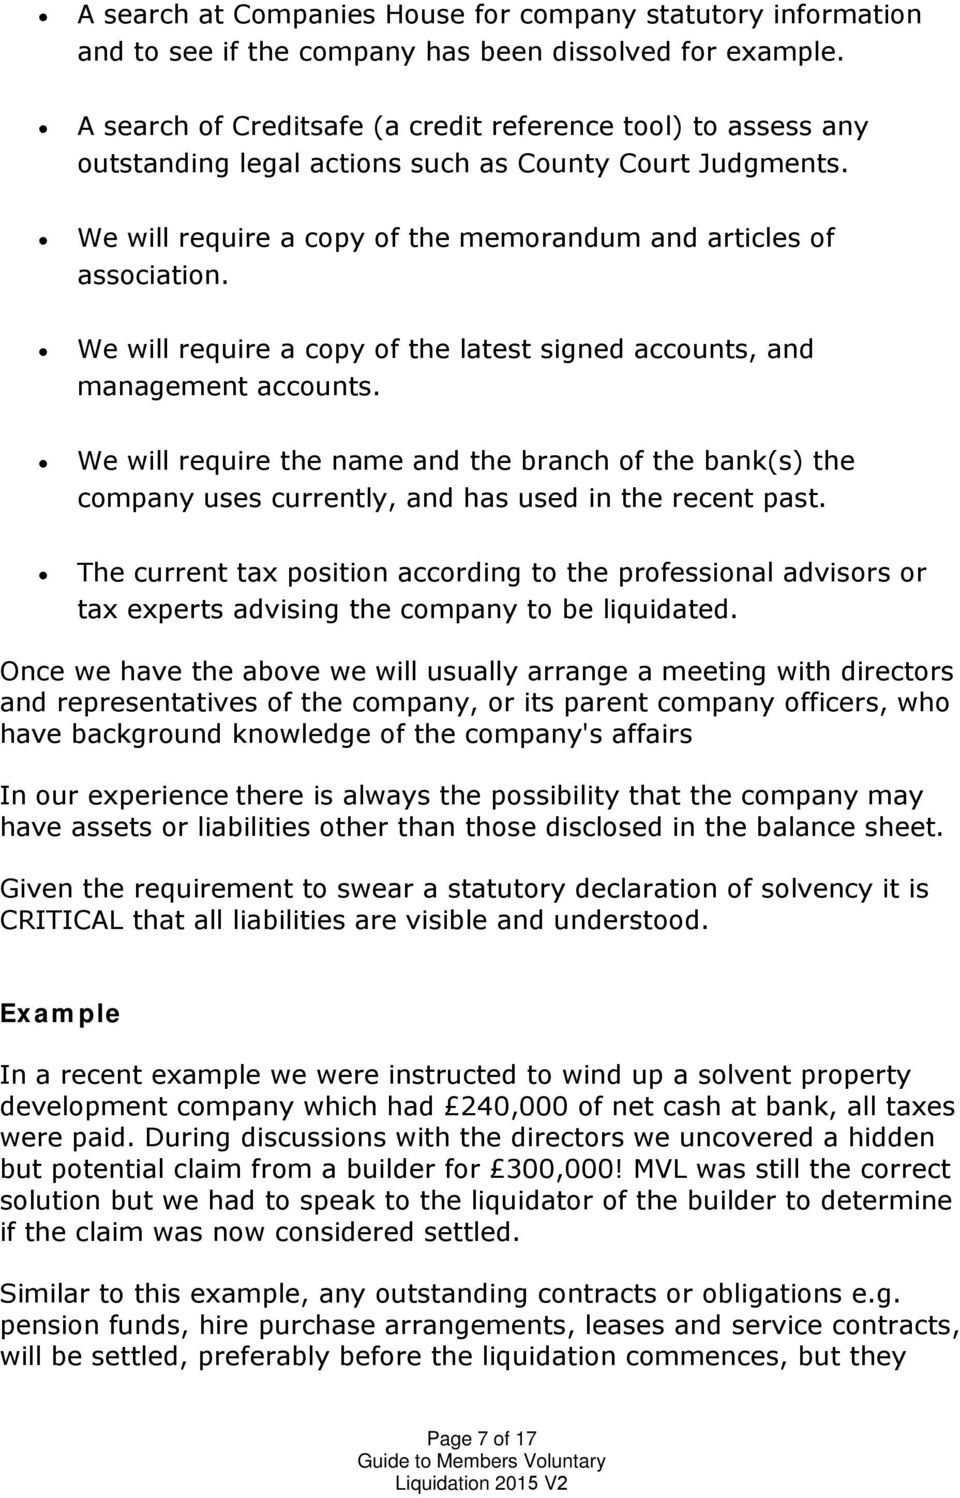 We will require a copy of the latest signed accounts, and management accounts. We will require the name and the branch of the bank(s) the company uses currently, and has used in the recent past.